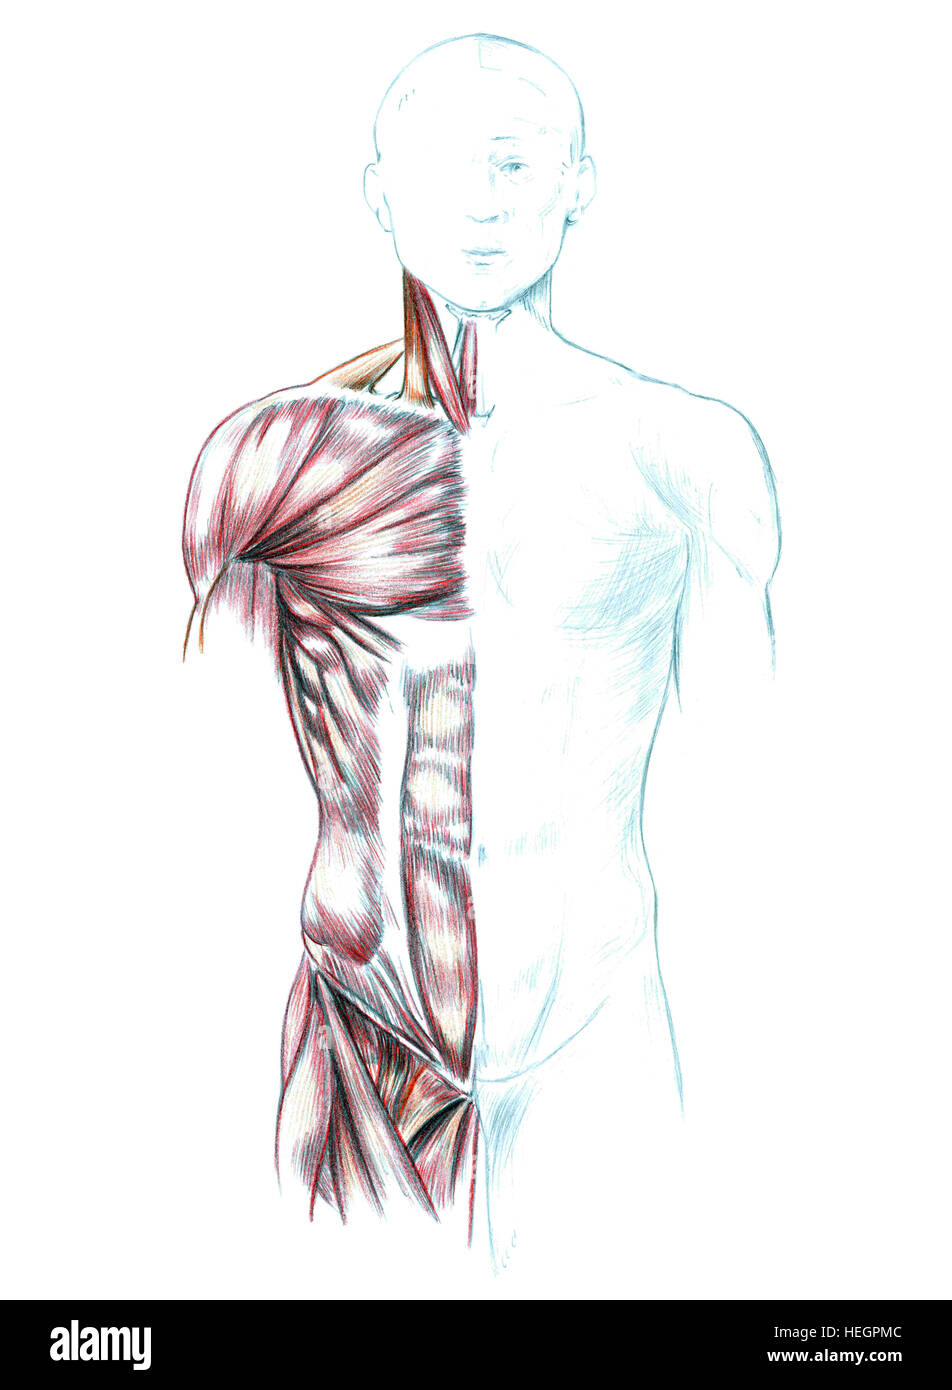 Deltoid Muscle Anatomy Muscles Isolated Stock Photos & Deltoid ...